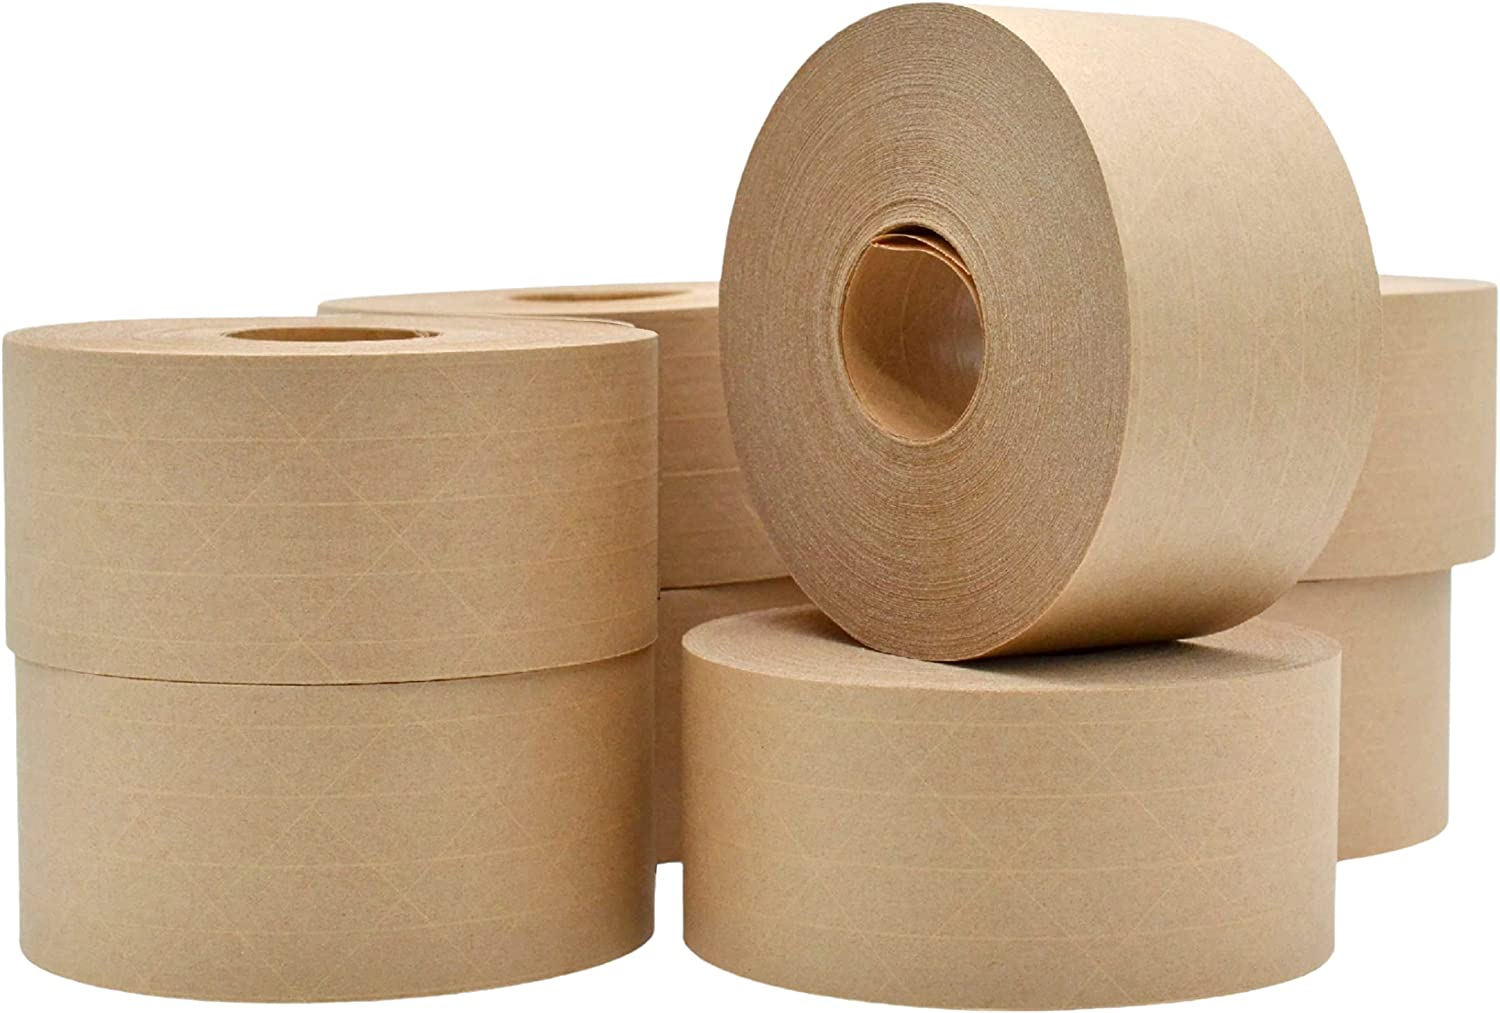 WOD WATWTE Fiberglass Reinforced Water Activated Gummed Kraft Paper Tape - 2.75 inch (70mm) x 375 ft. (Pack of 8-Rolls) Ideal for Packing, Shipping, & Sealing